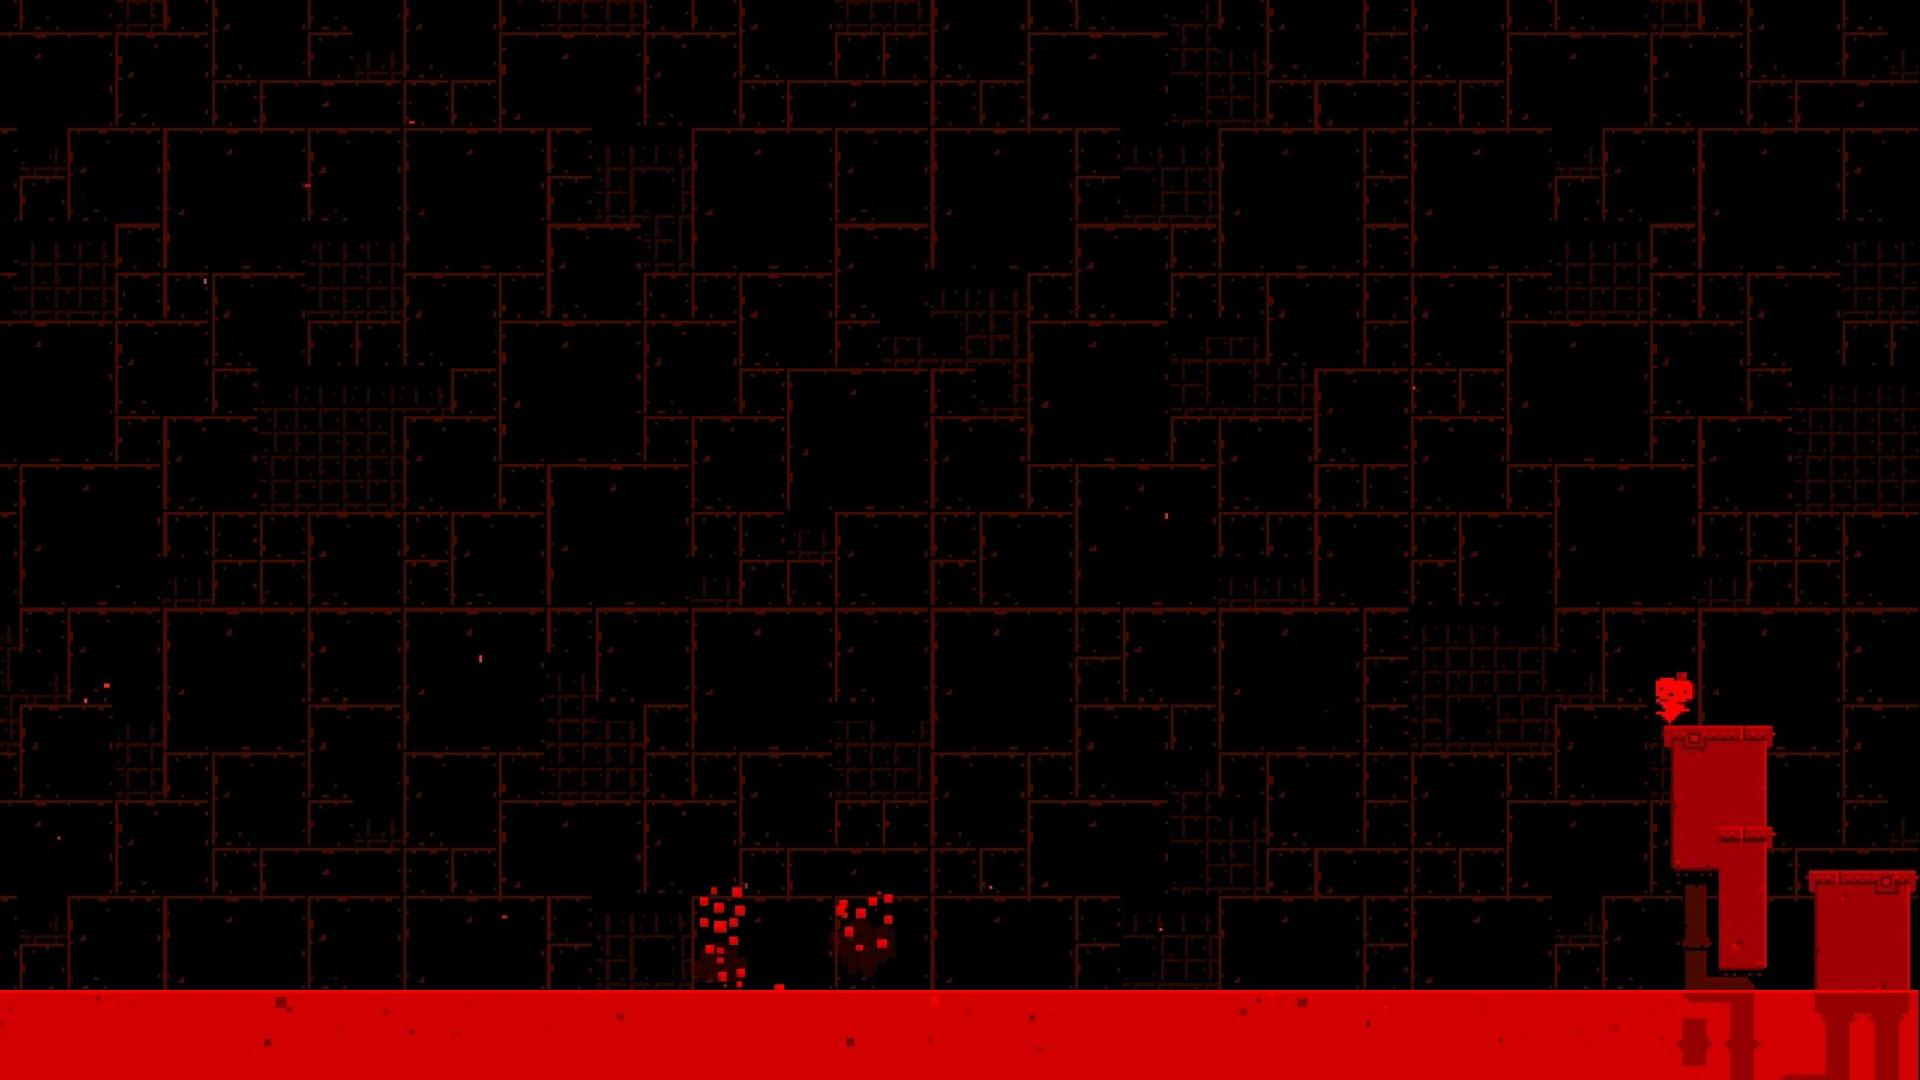 16 Bit Wallpaper Images Pictures   Becuo 1920x1080